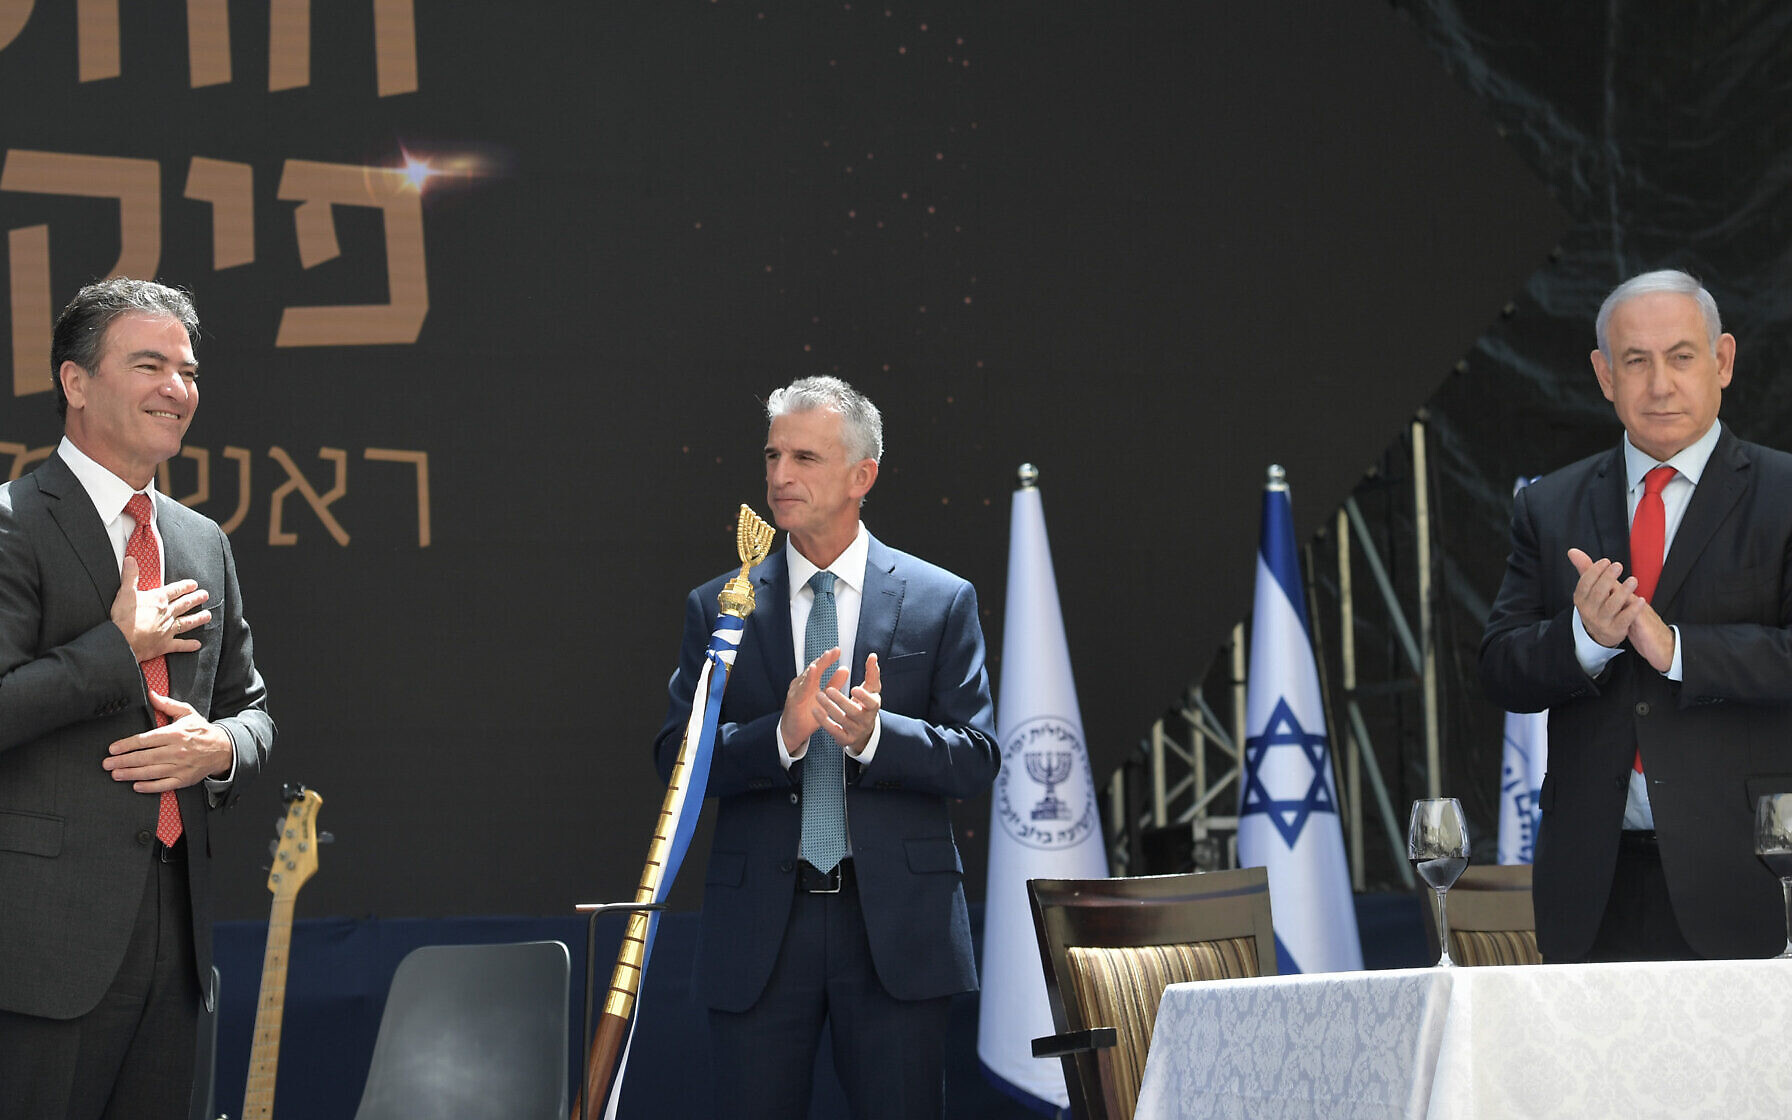 New Mossad chief: Even as it negotiates, Iran working toward 'dream' of  nukes | The Times of Israel